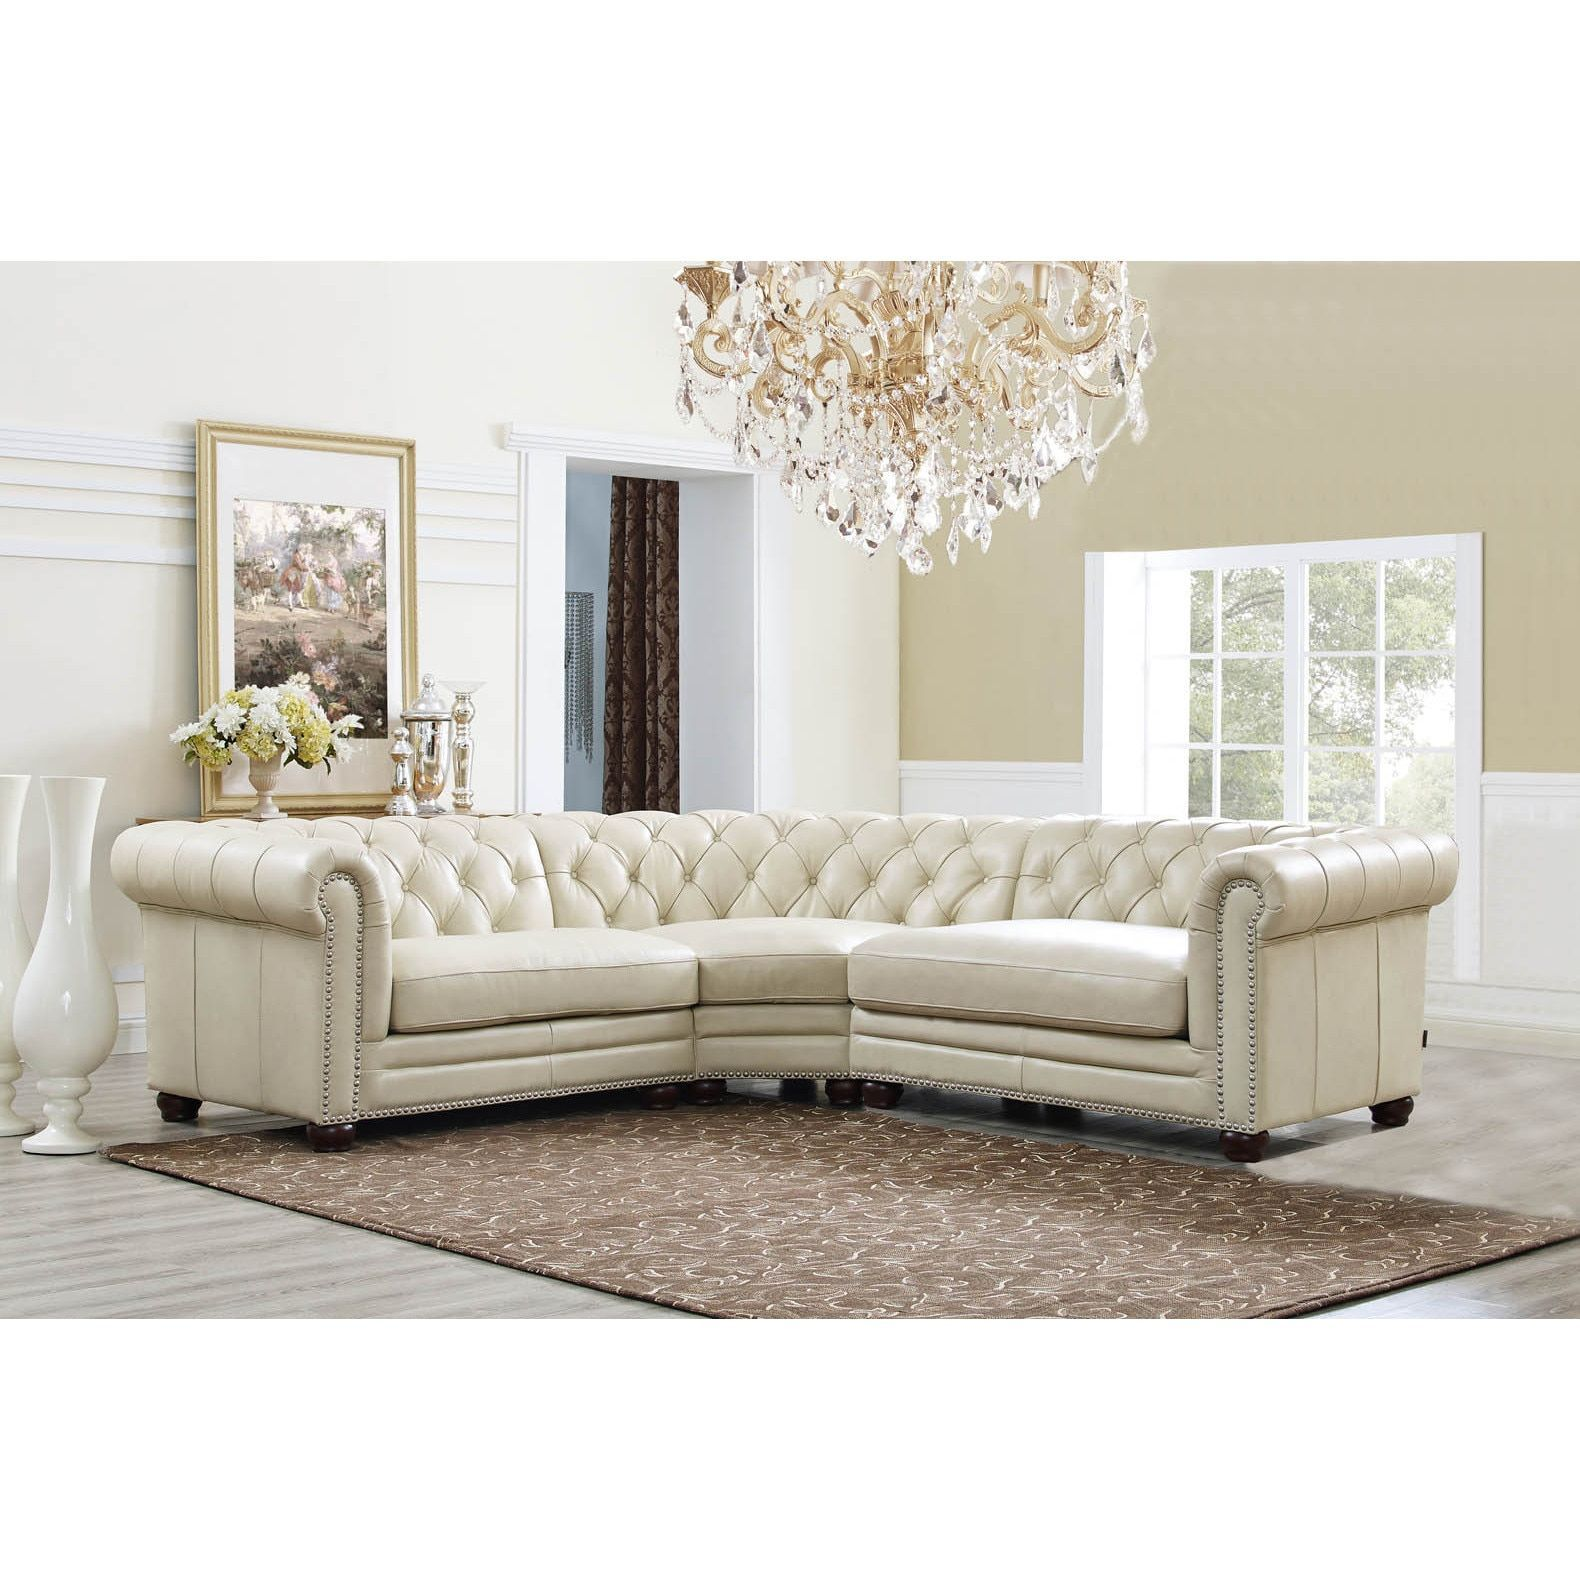 Hydeline By Amax Nicholson Top Grain Leather On Tufted Nailhead Trim Sectional Sofa 3 Pieces